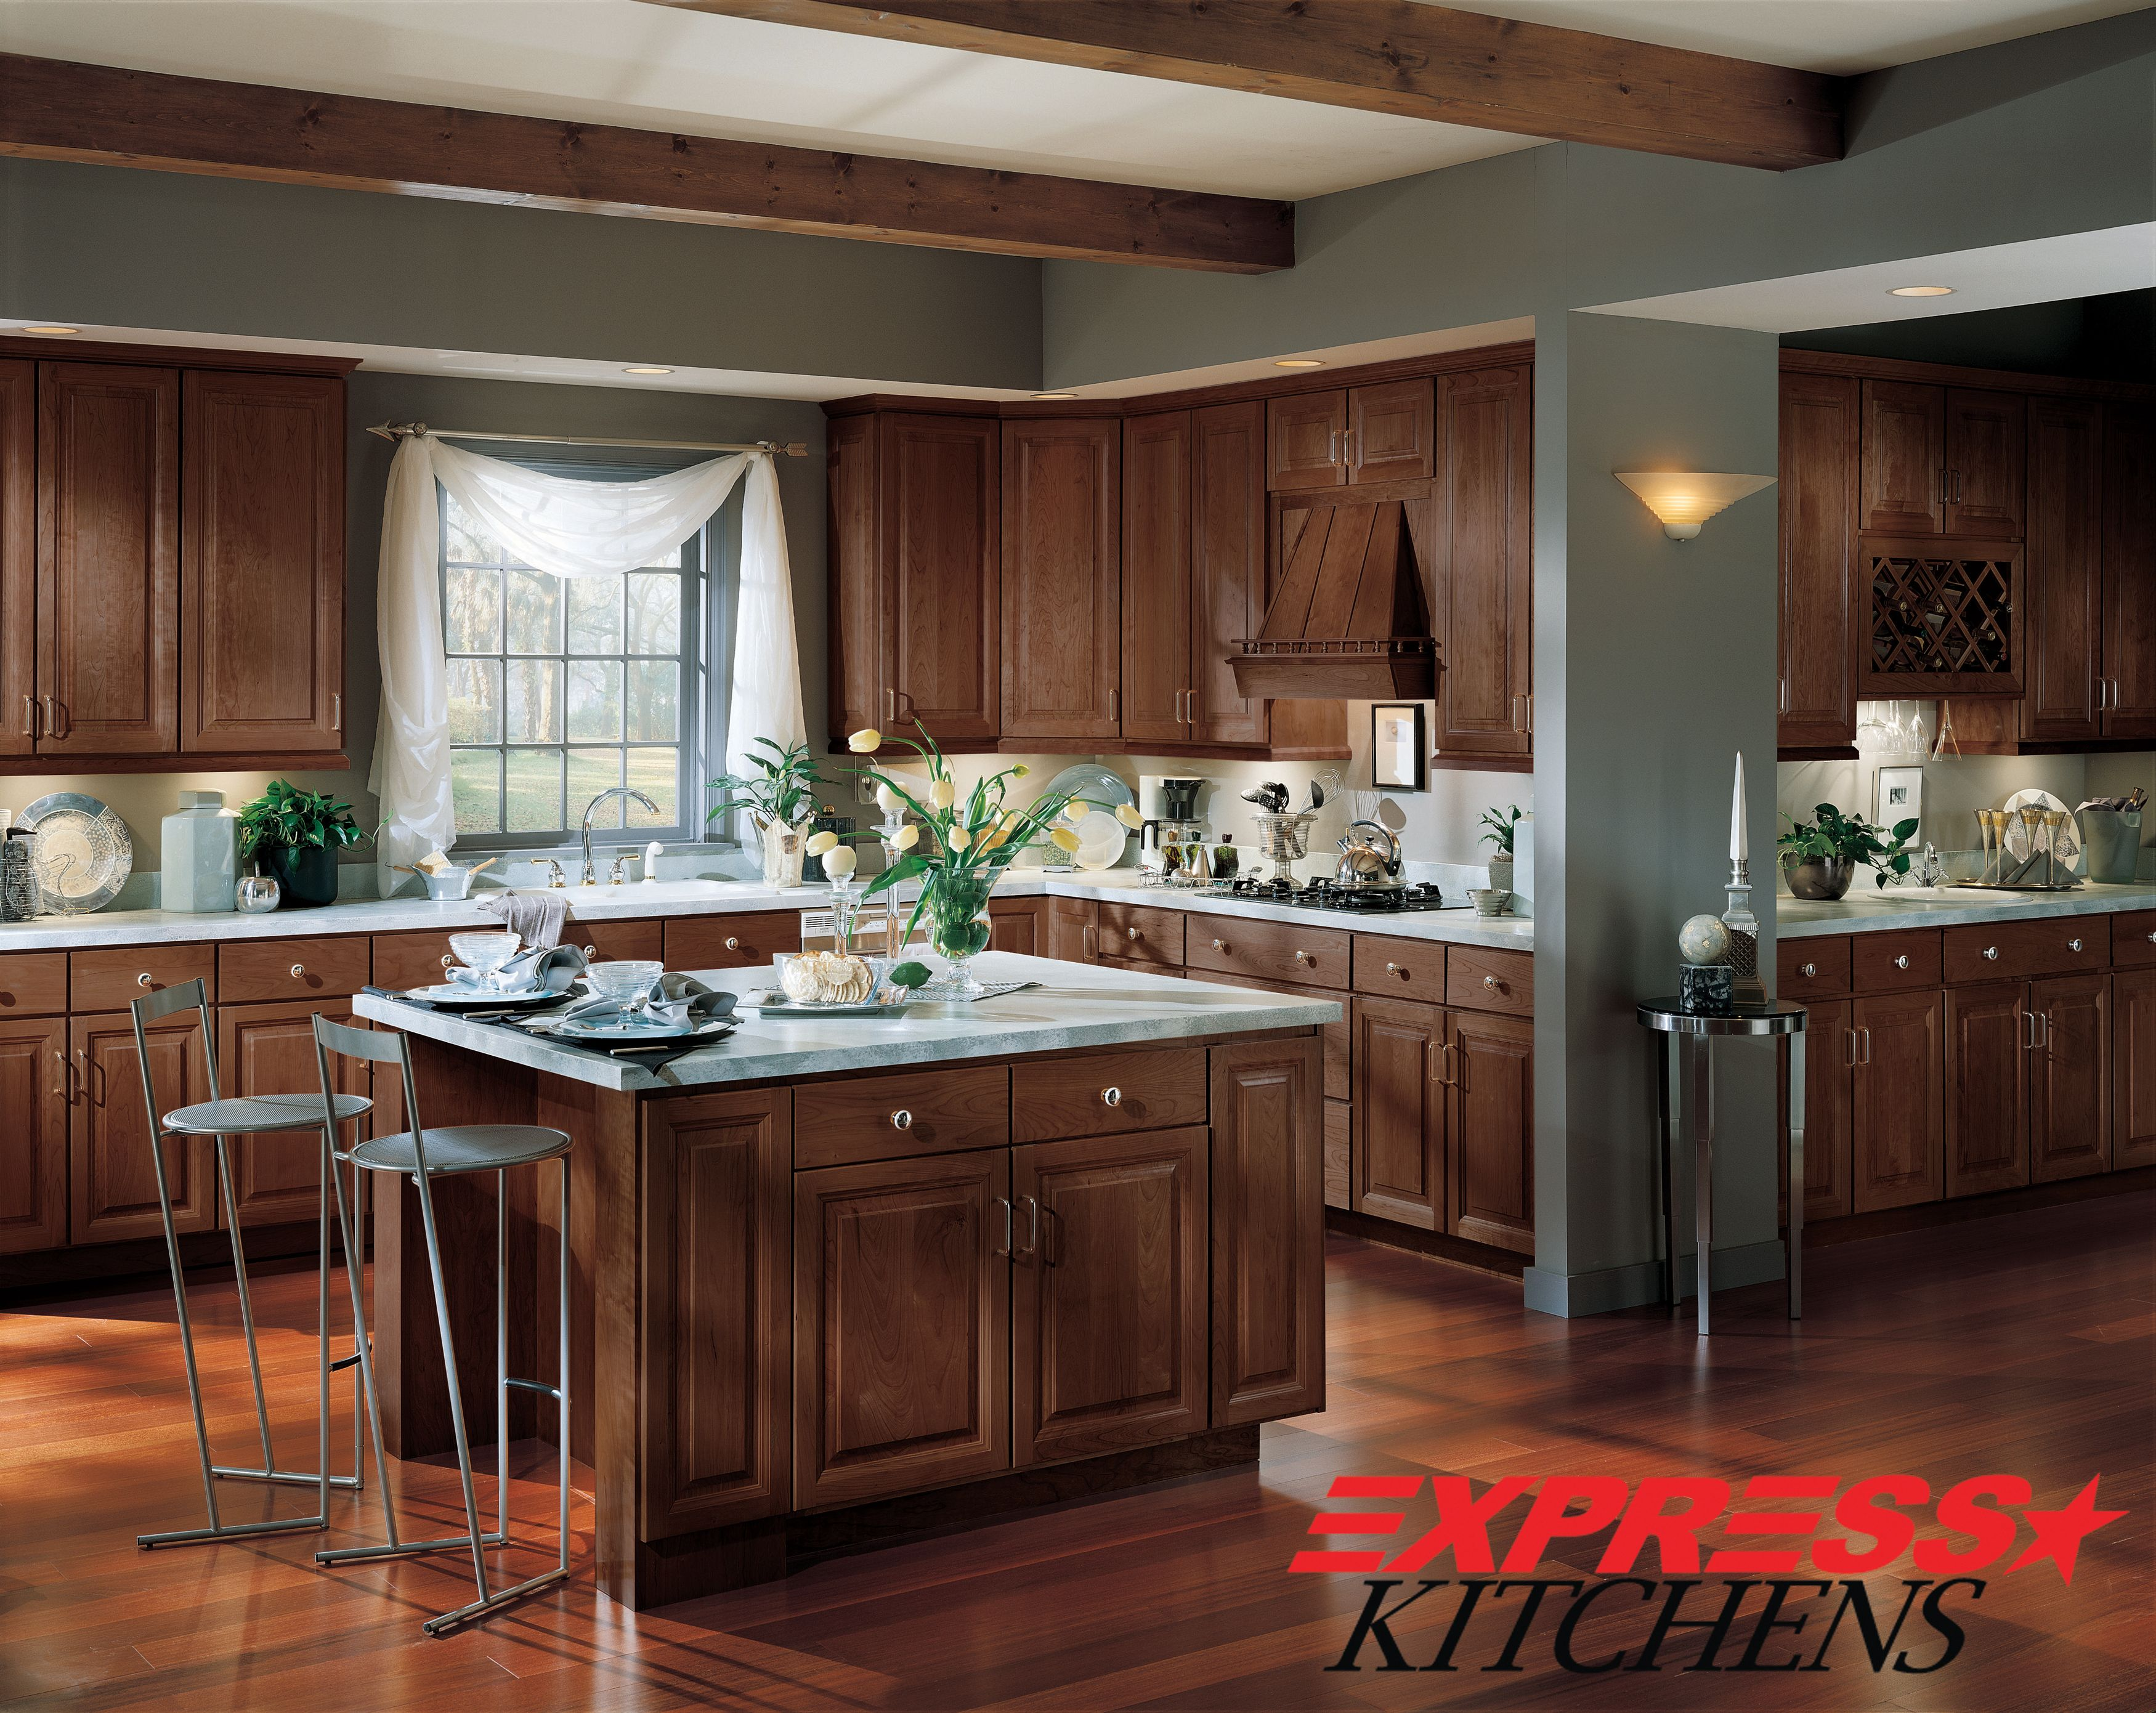 The Langdon Door Style Is An American Classic As Cherry Remains A Symbol Of Distinction And Refinem Cherry Cabinets Kitchen Kitchen Colors New Kitchen Cabinets